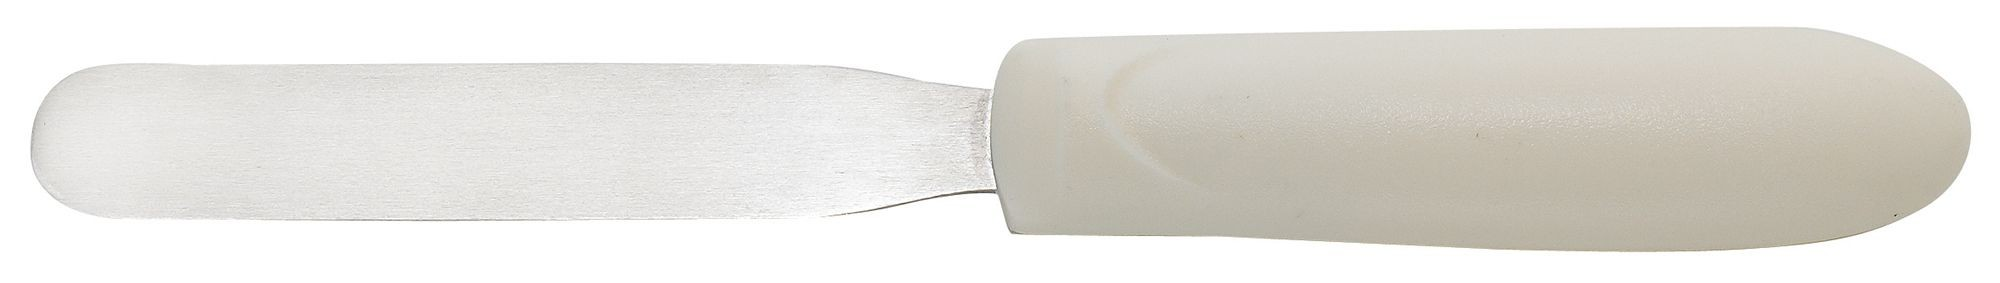 "Winco TWPS-4 Bakery Spatula 4-1/4"" Blade, White Polypropylene Handle"